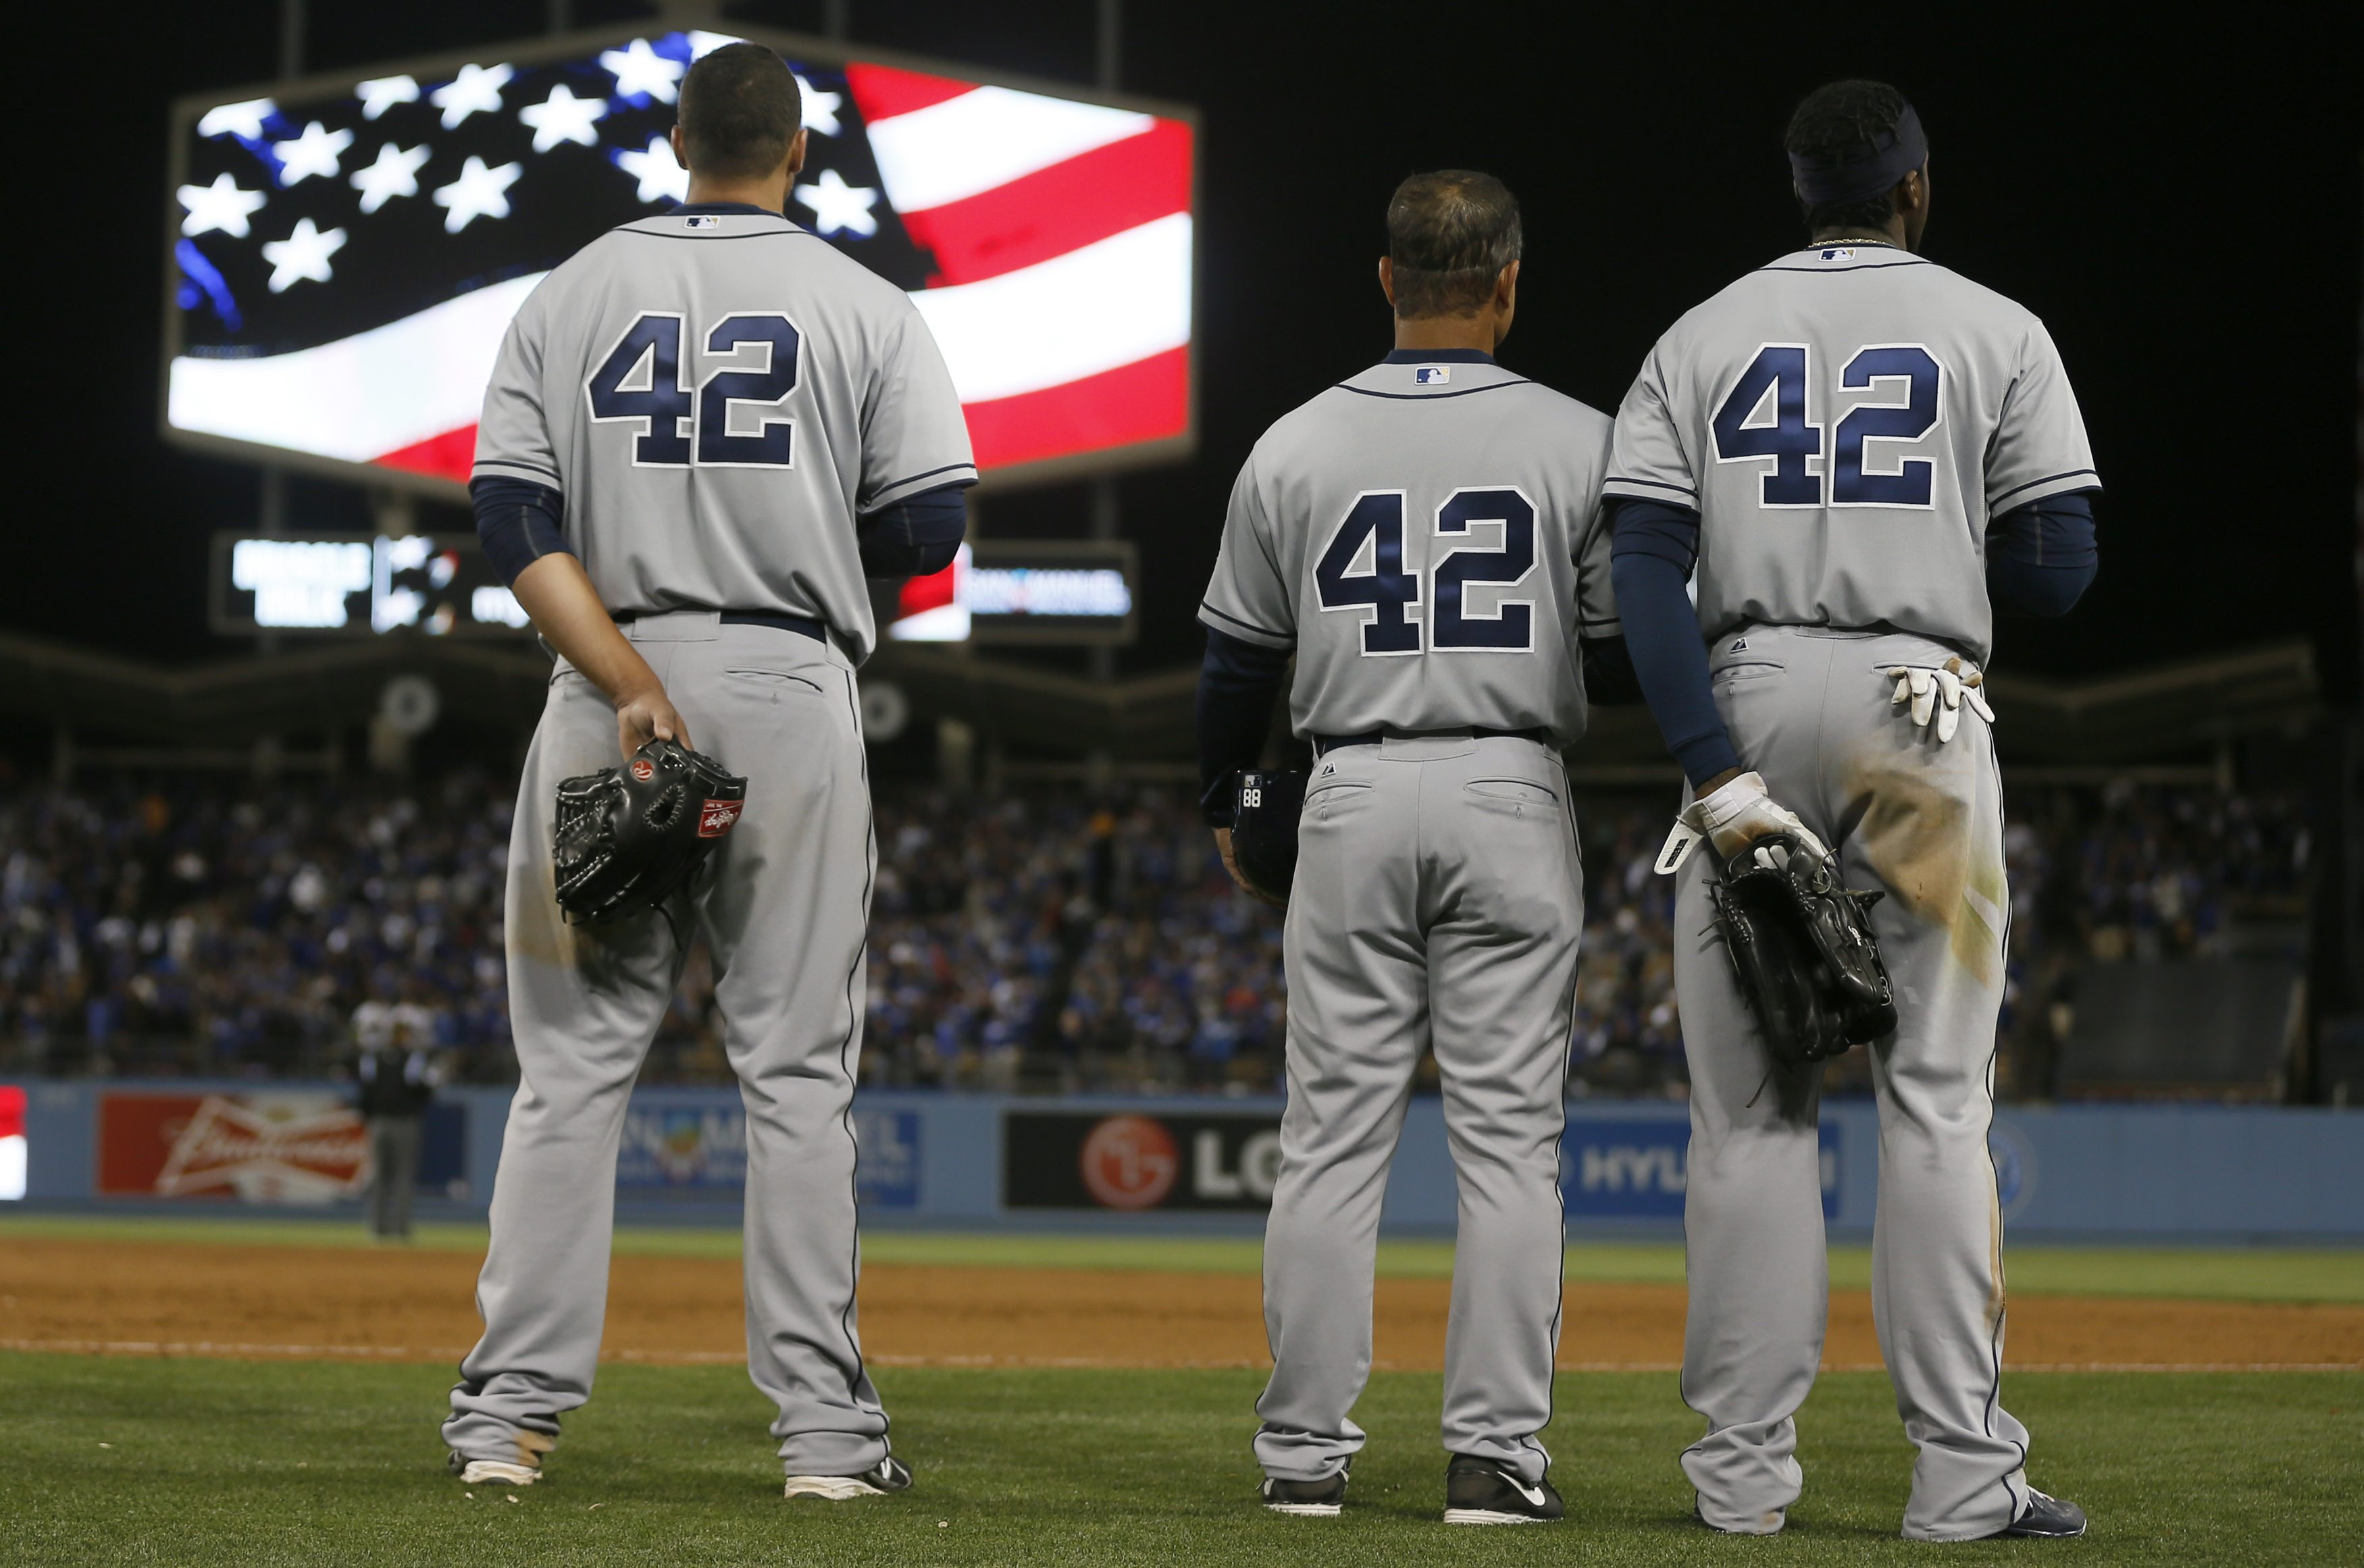 The Padres and Dodgers capped a Monday of baseball festivities honoring Jackie Robinson. (Reuters)